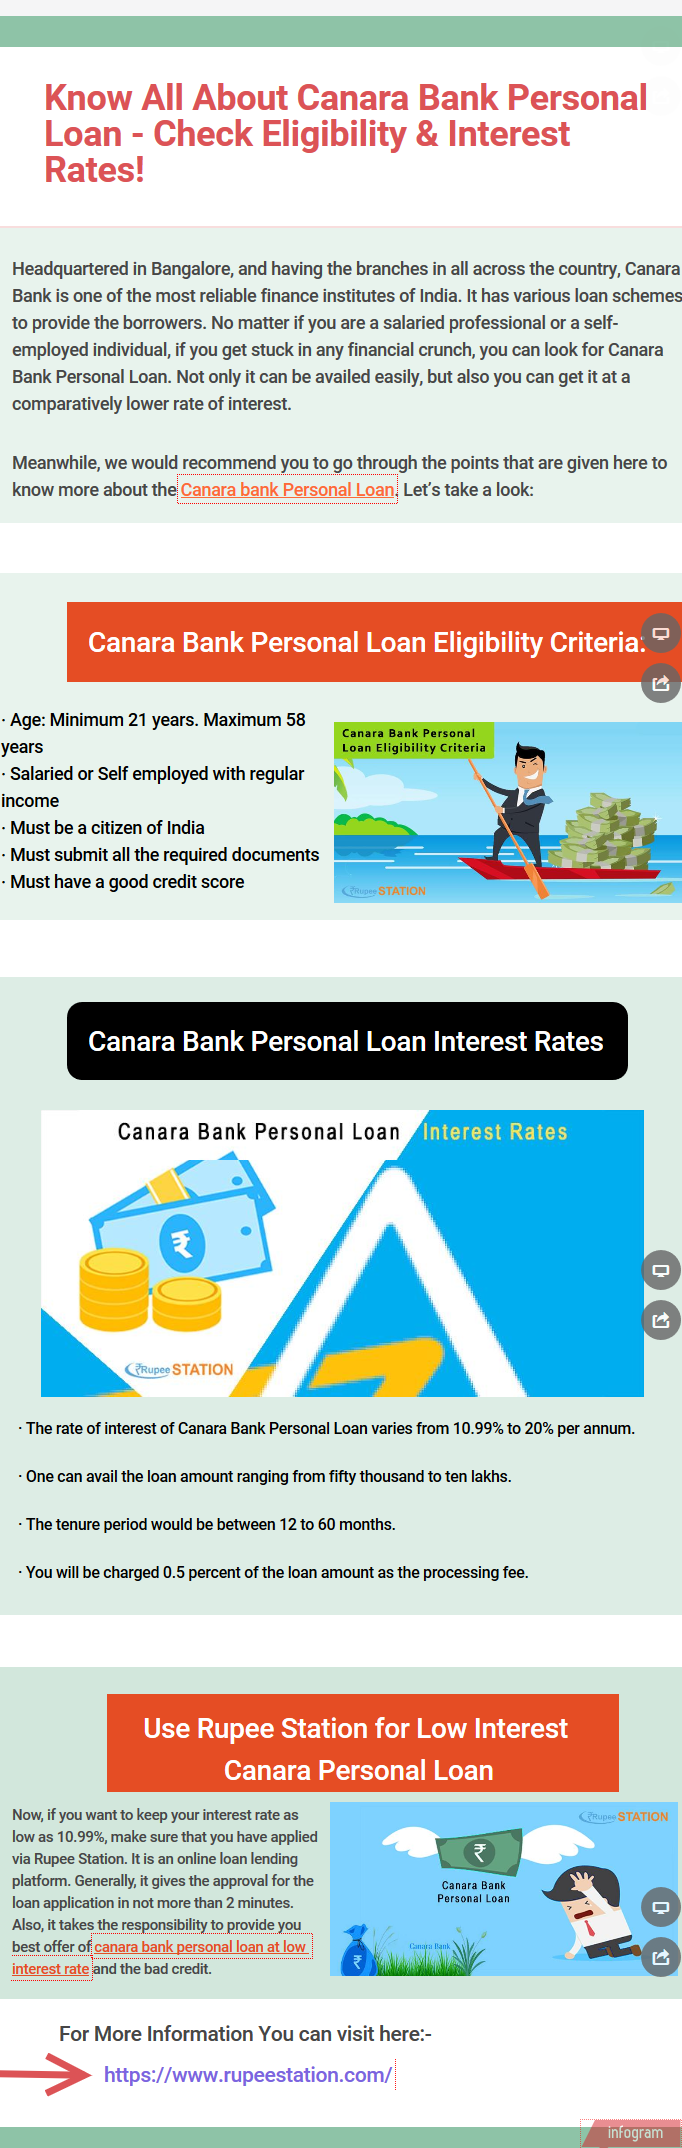 Know All About Canara Bank Personal Loan Check Eligibility Interest Rates Canarabankpersonalloan Canarabankpersonal Personal Loans Interest Rates Person